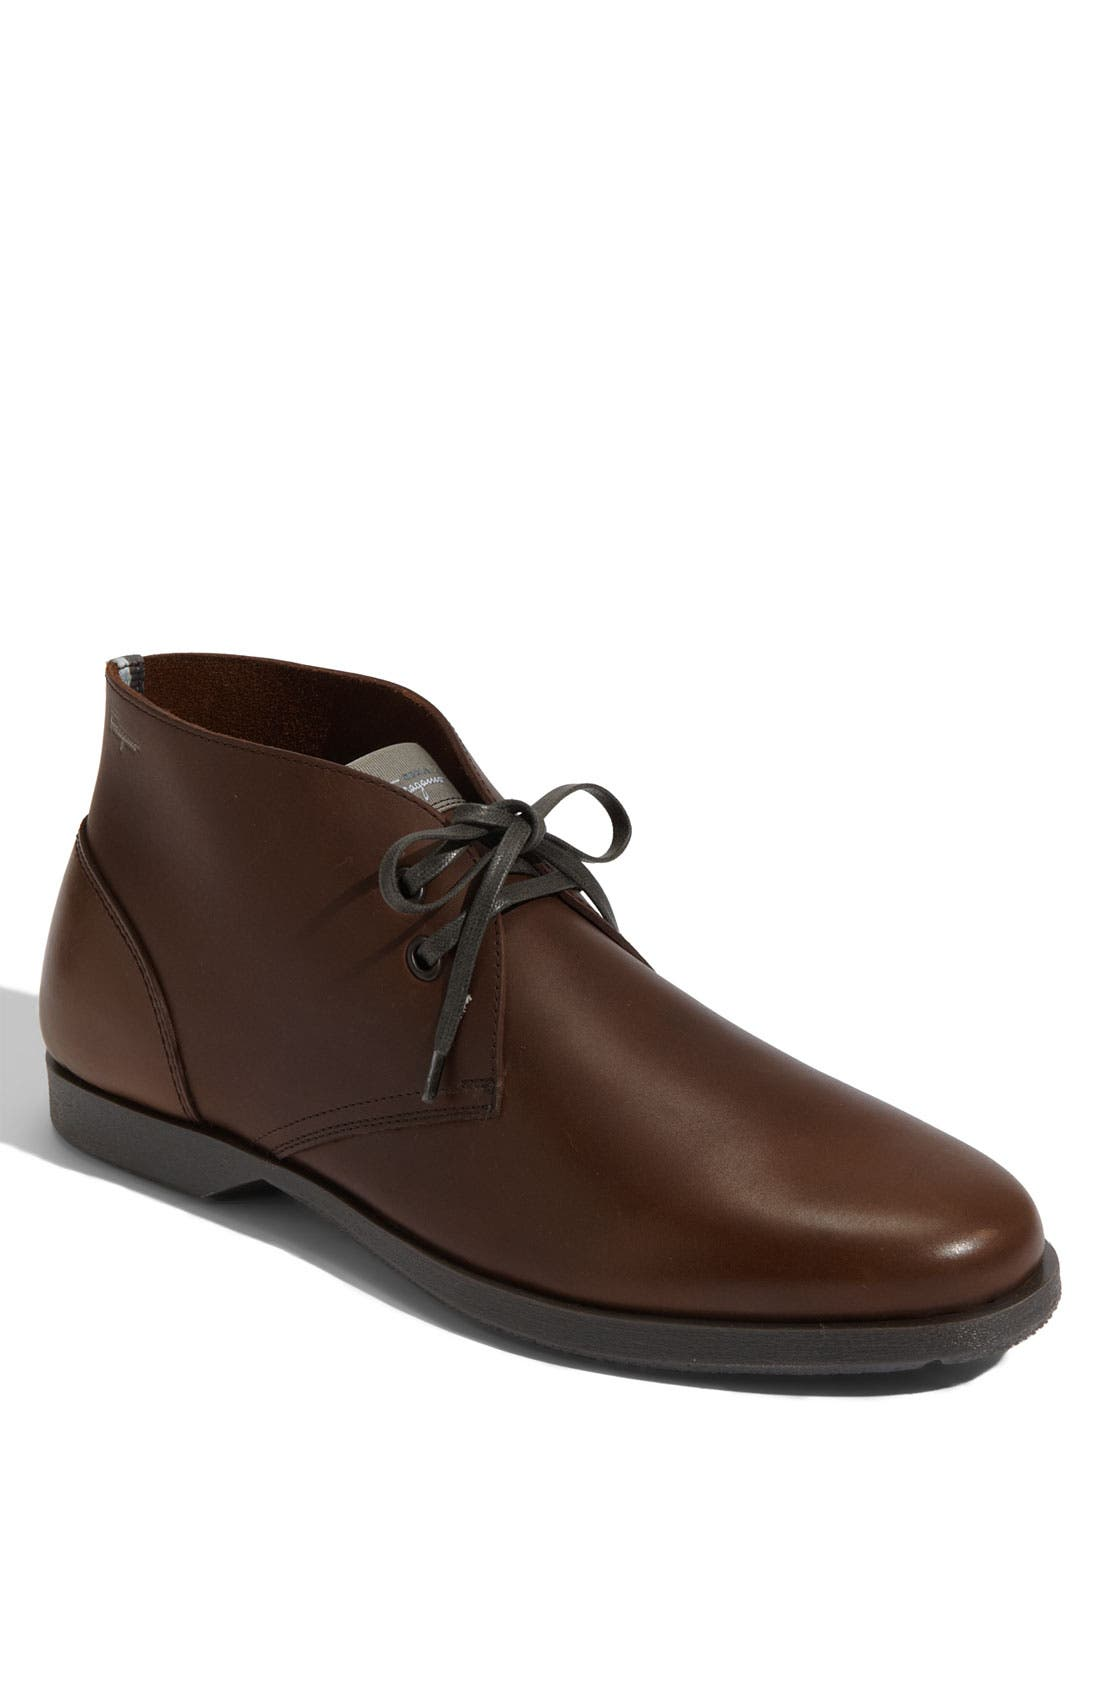 Main Image - Salvatore Ferragamo 'Metro' Lace-Up Boot